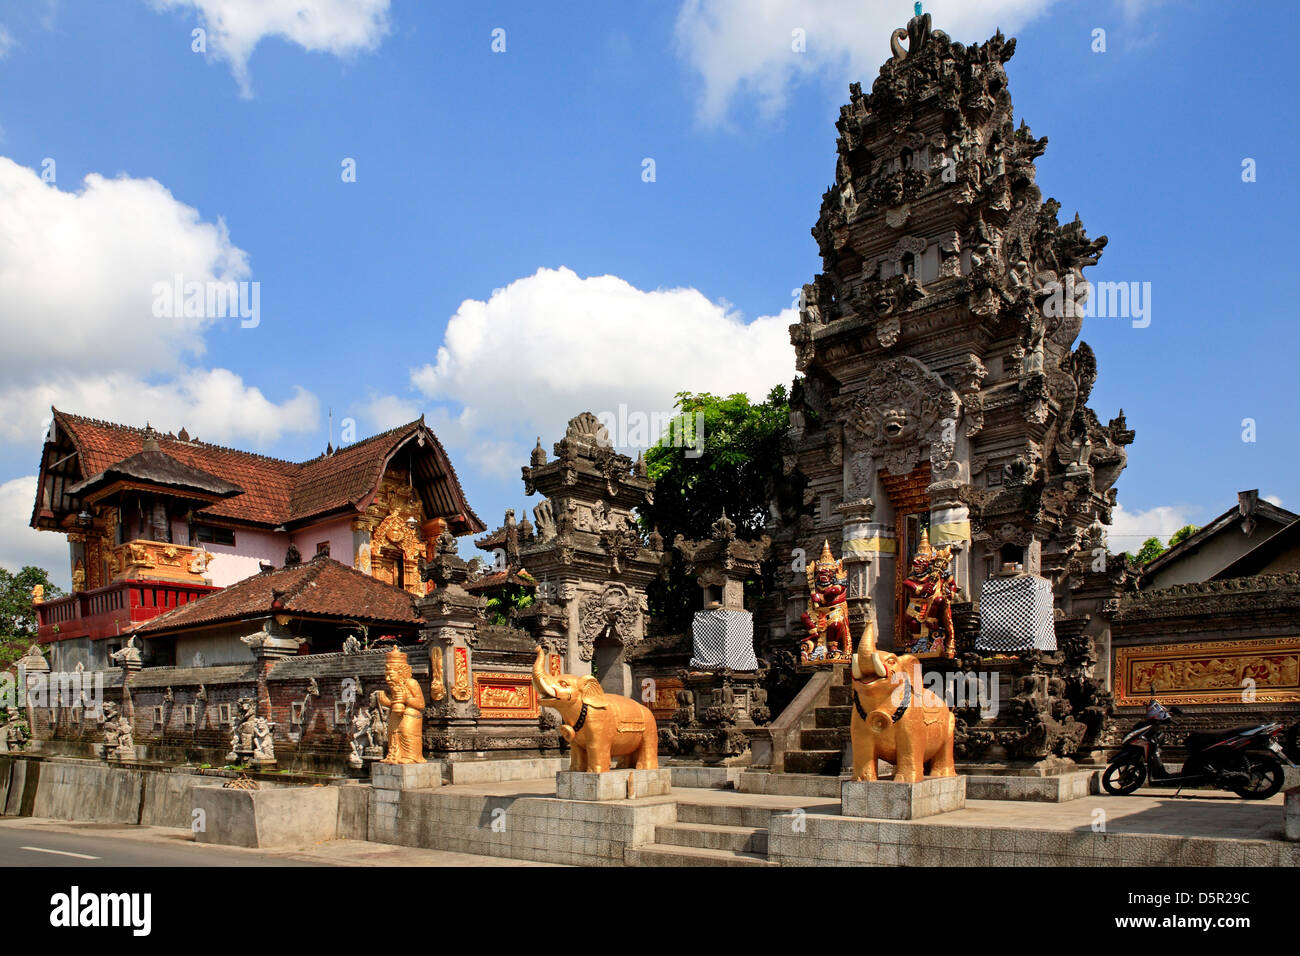 the-entrance-to-a-temple-at-pejeng-near-ubud-bali-indonesia-D5R29C.jpg